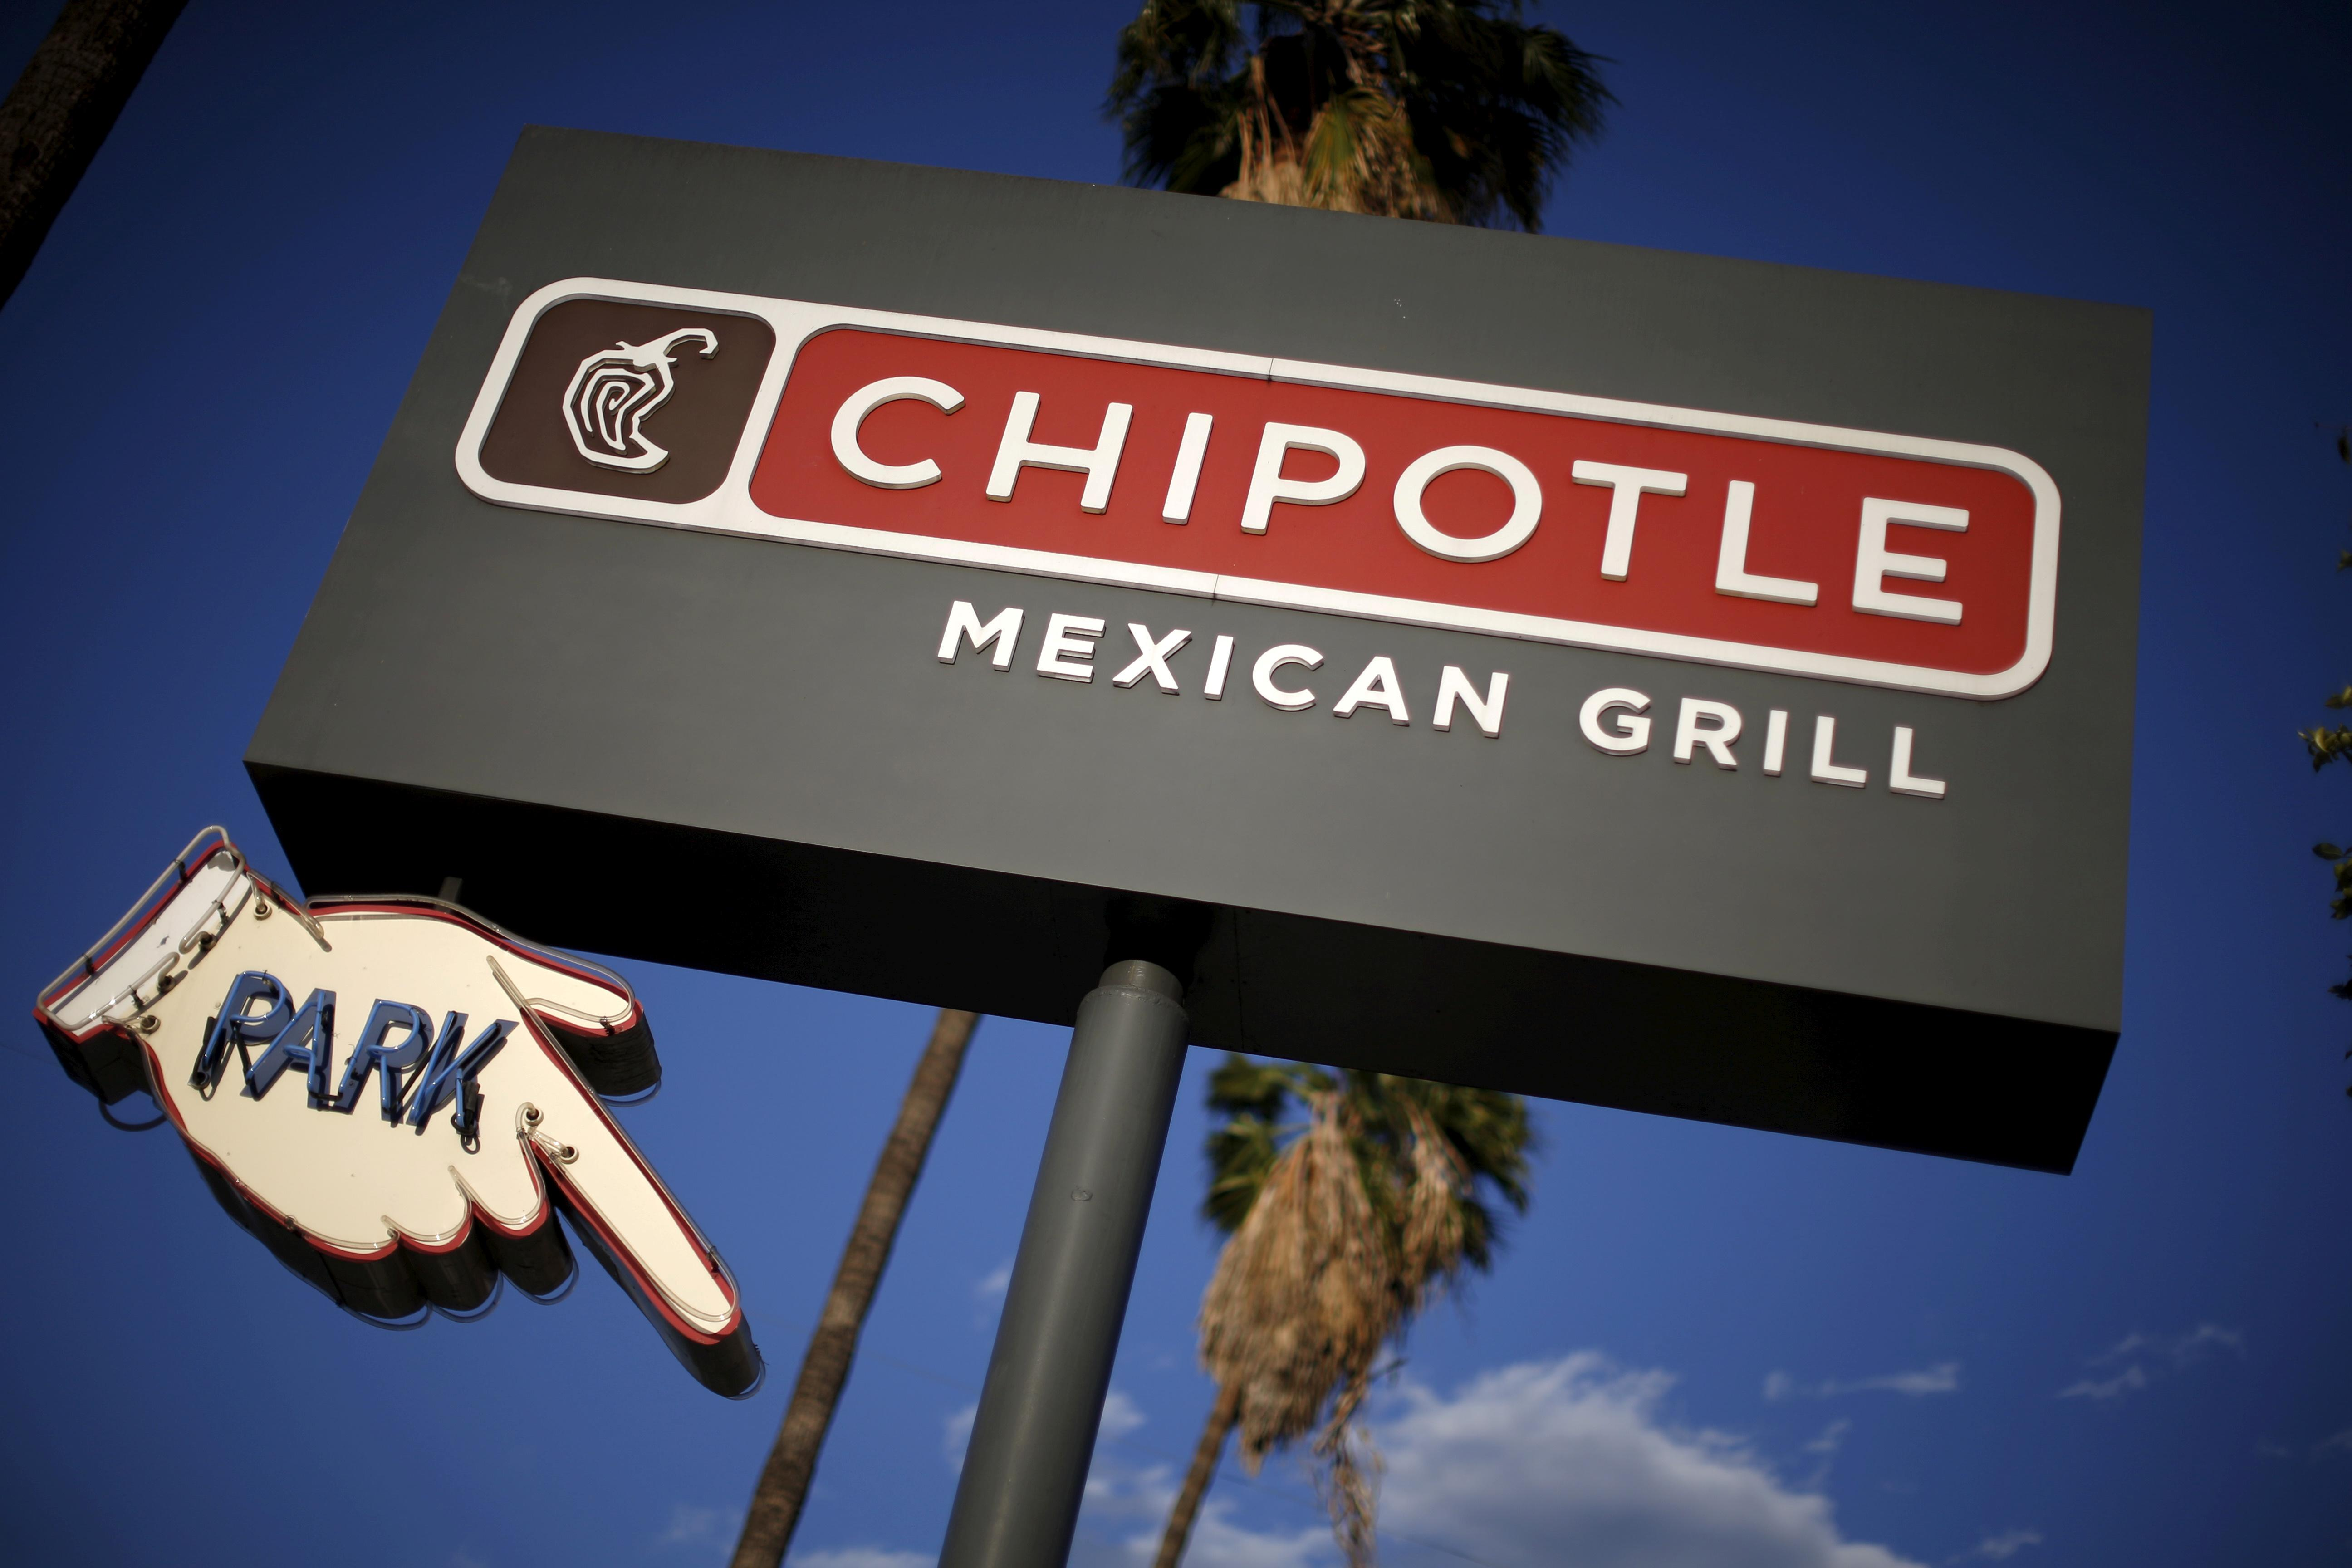 Chipotle, Google, Tesla, Amazon, Berkshire Hathaway: Companies to Watch